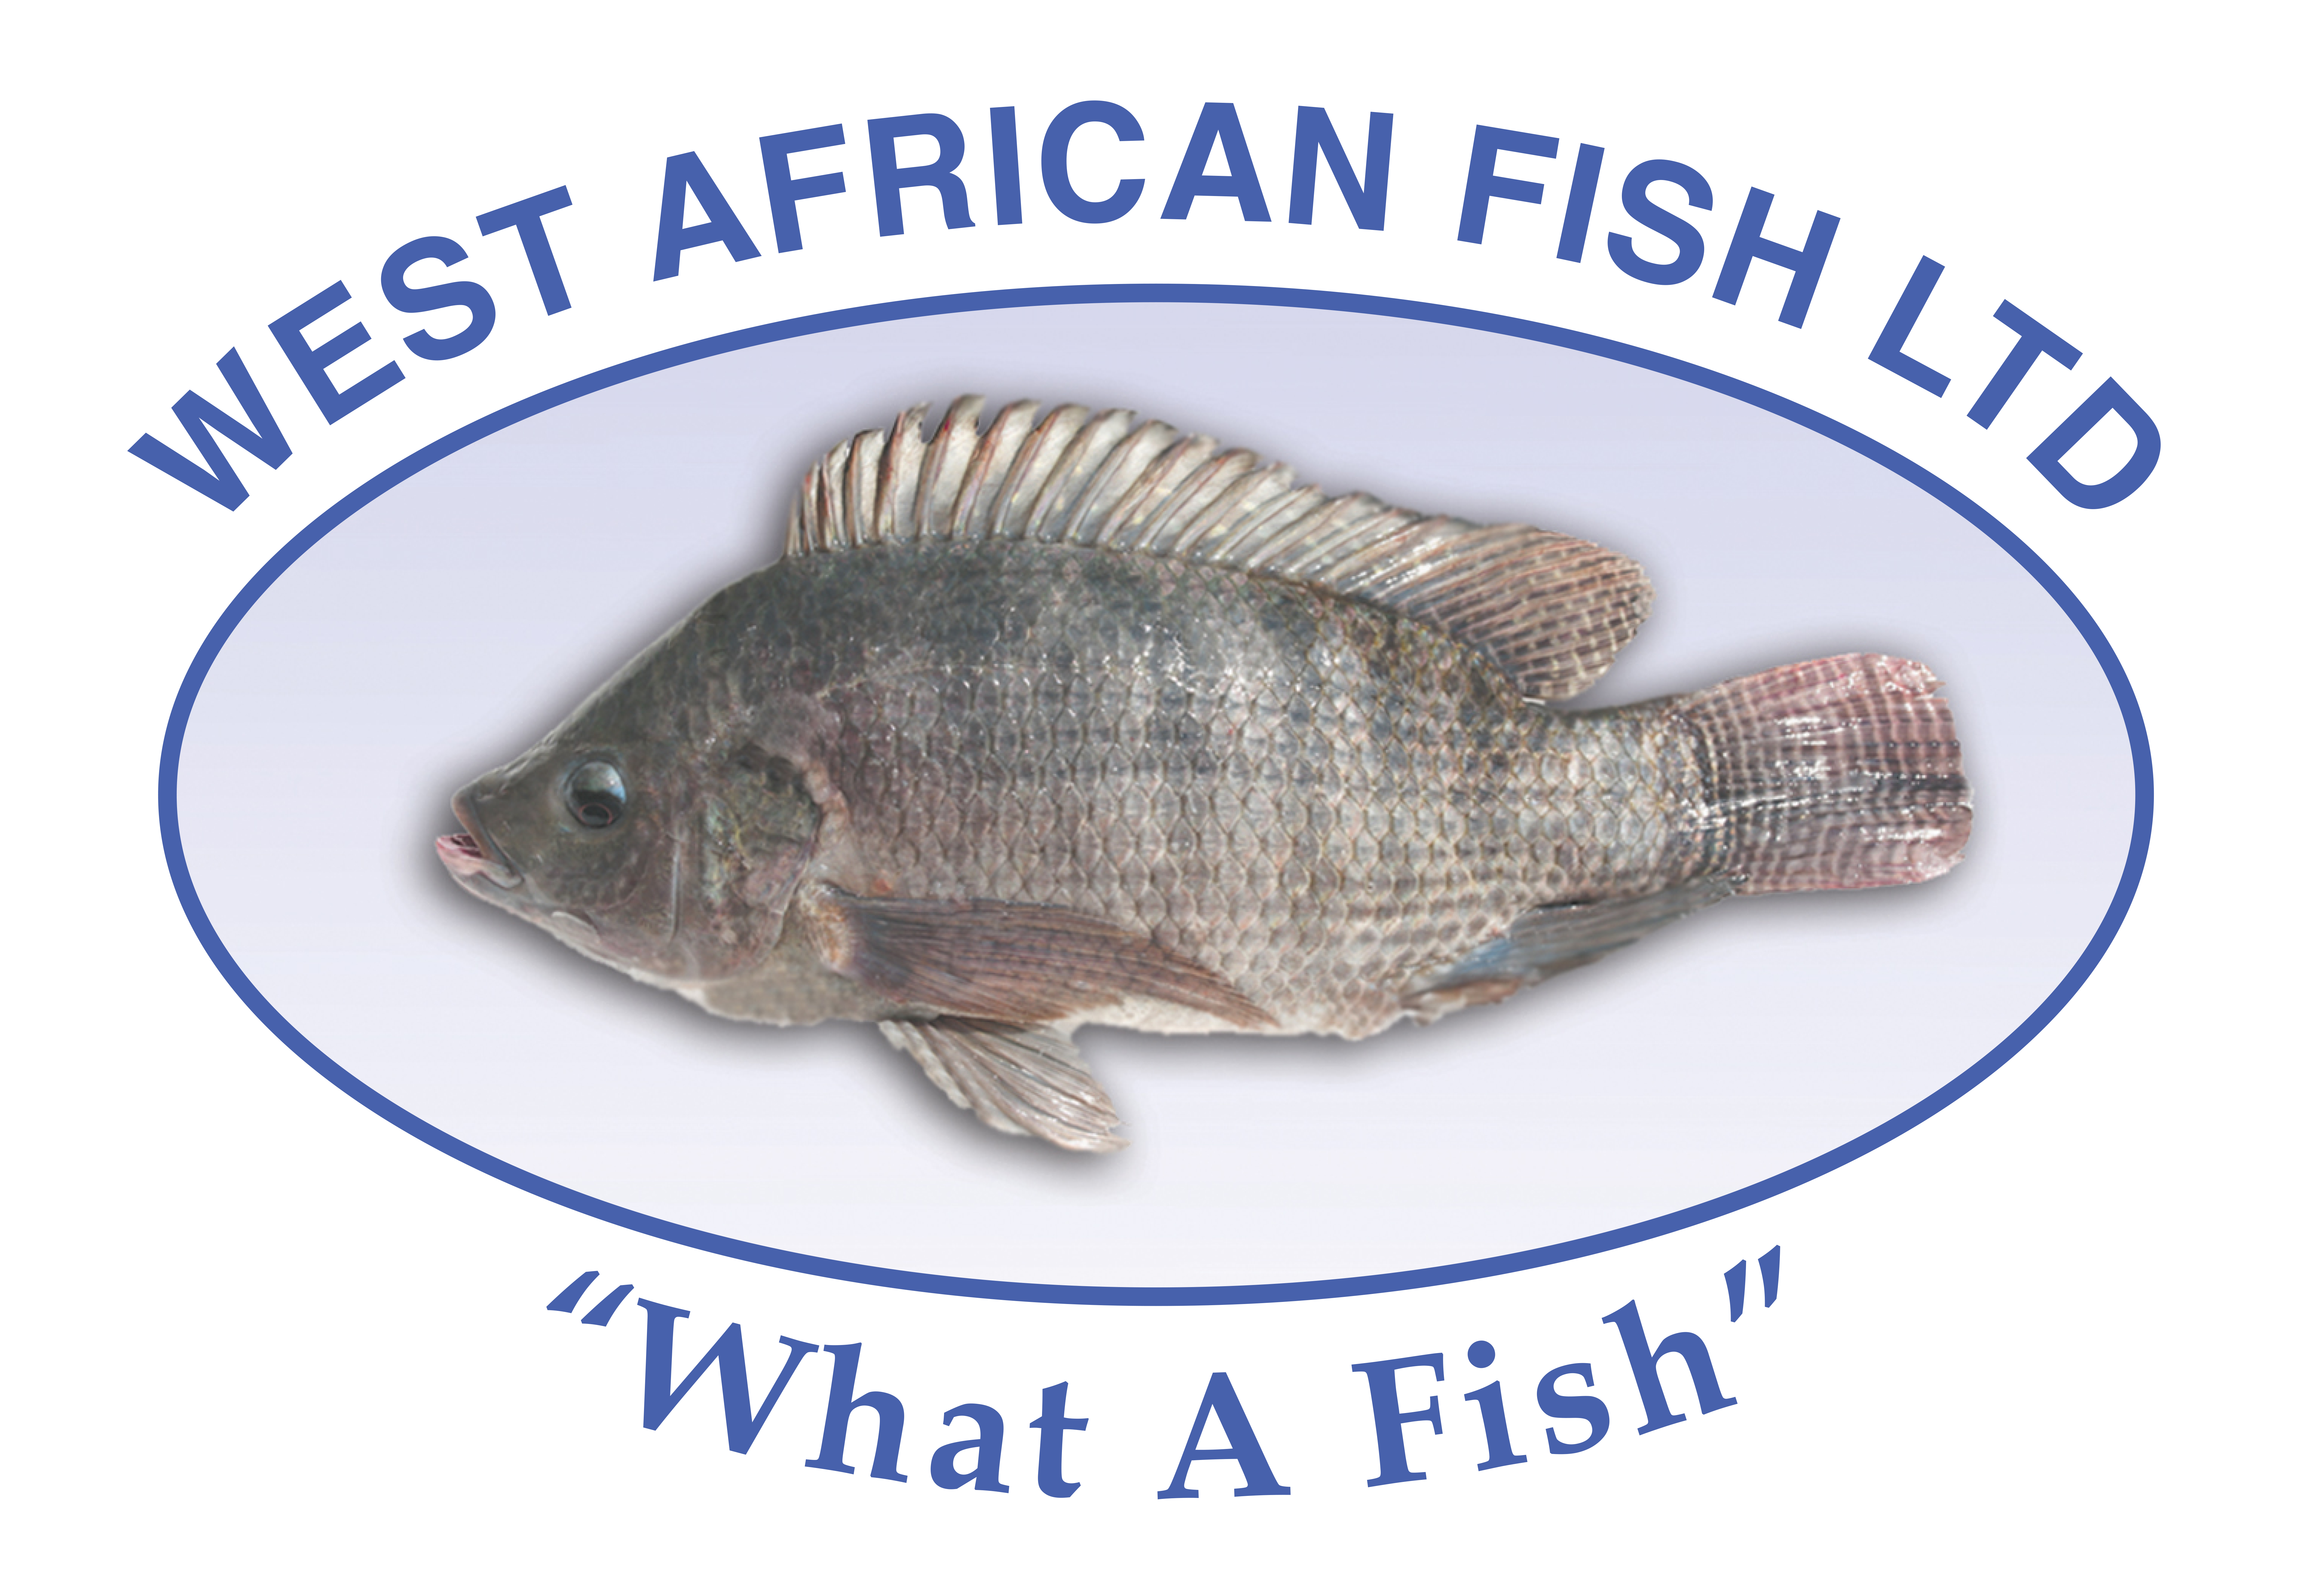 West African Fish